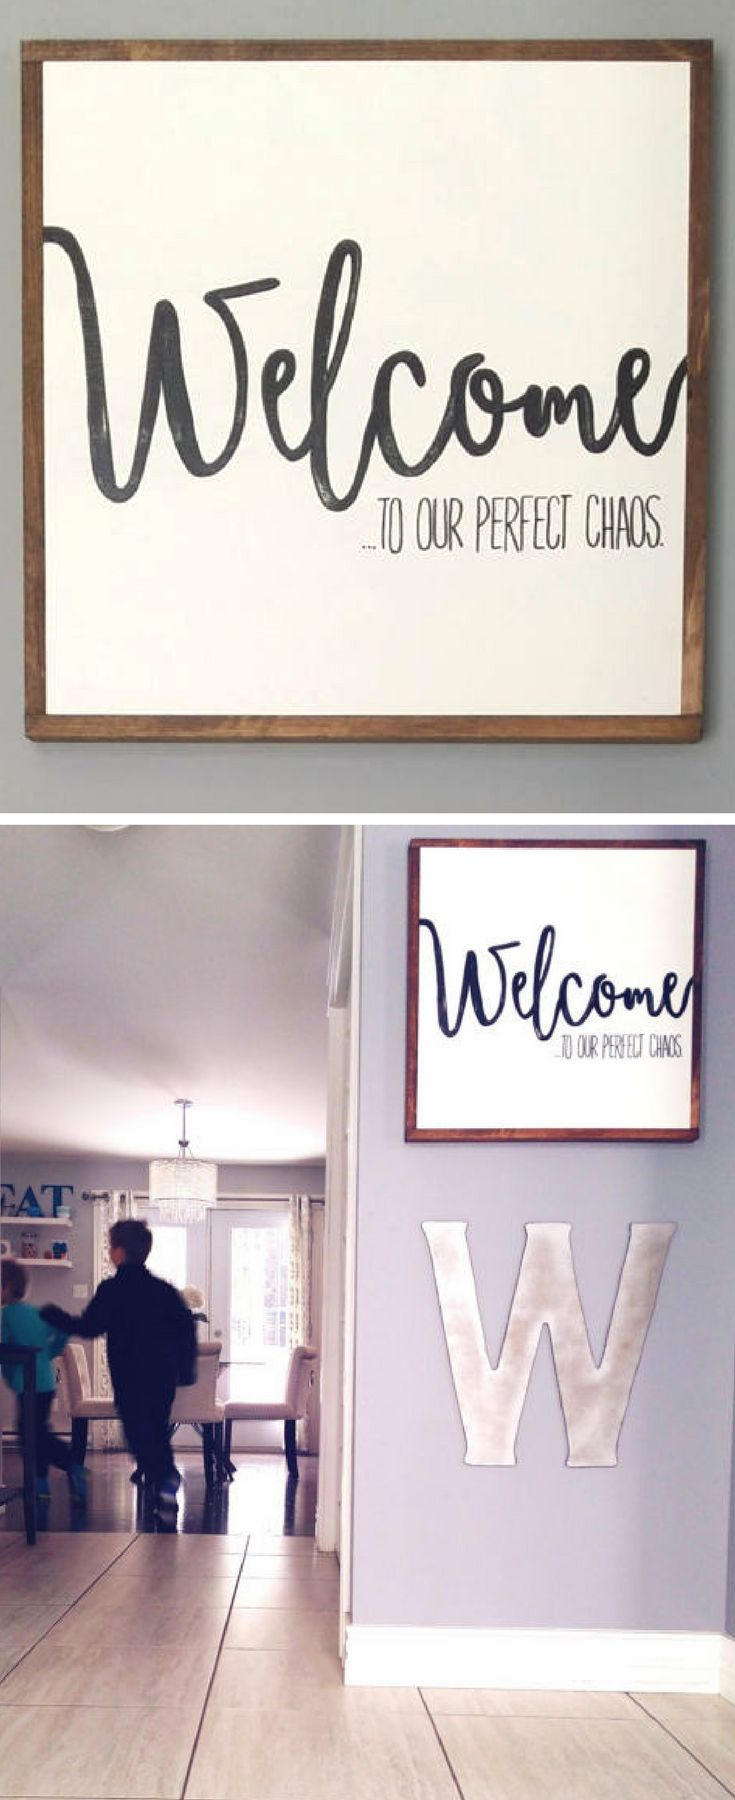 Such a perfect sign for any house that has young kids - it's always chaotic, but wouldn't have it any other way! Welcome to our perfect chaos wood sign, farmhouse sign, farmhouse decor, rustic sign, entryway sign, rustic decor, home decor, wall decor #ad #DIYHomeDecorOrganization